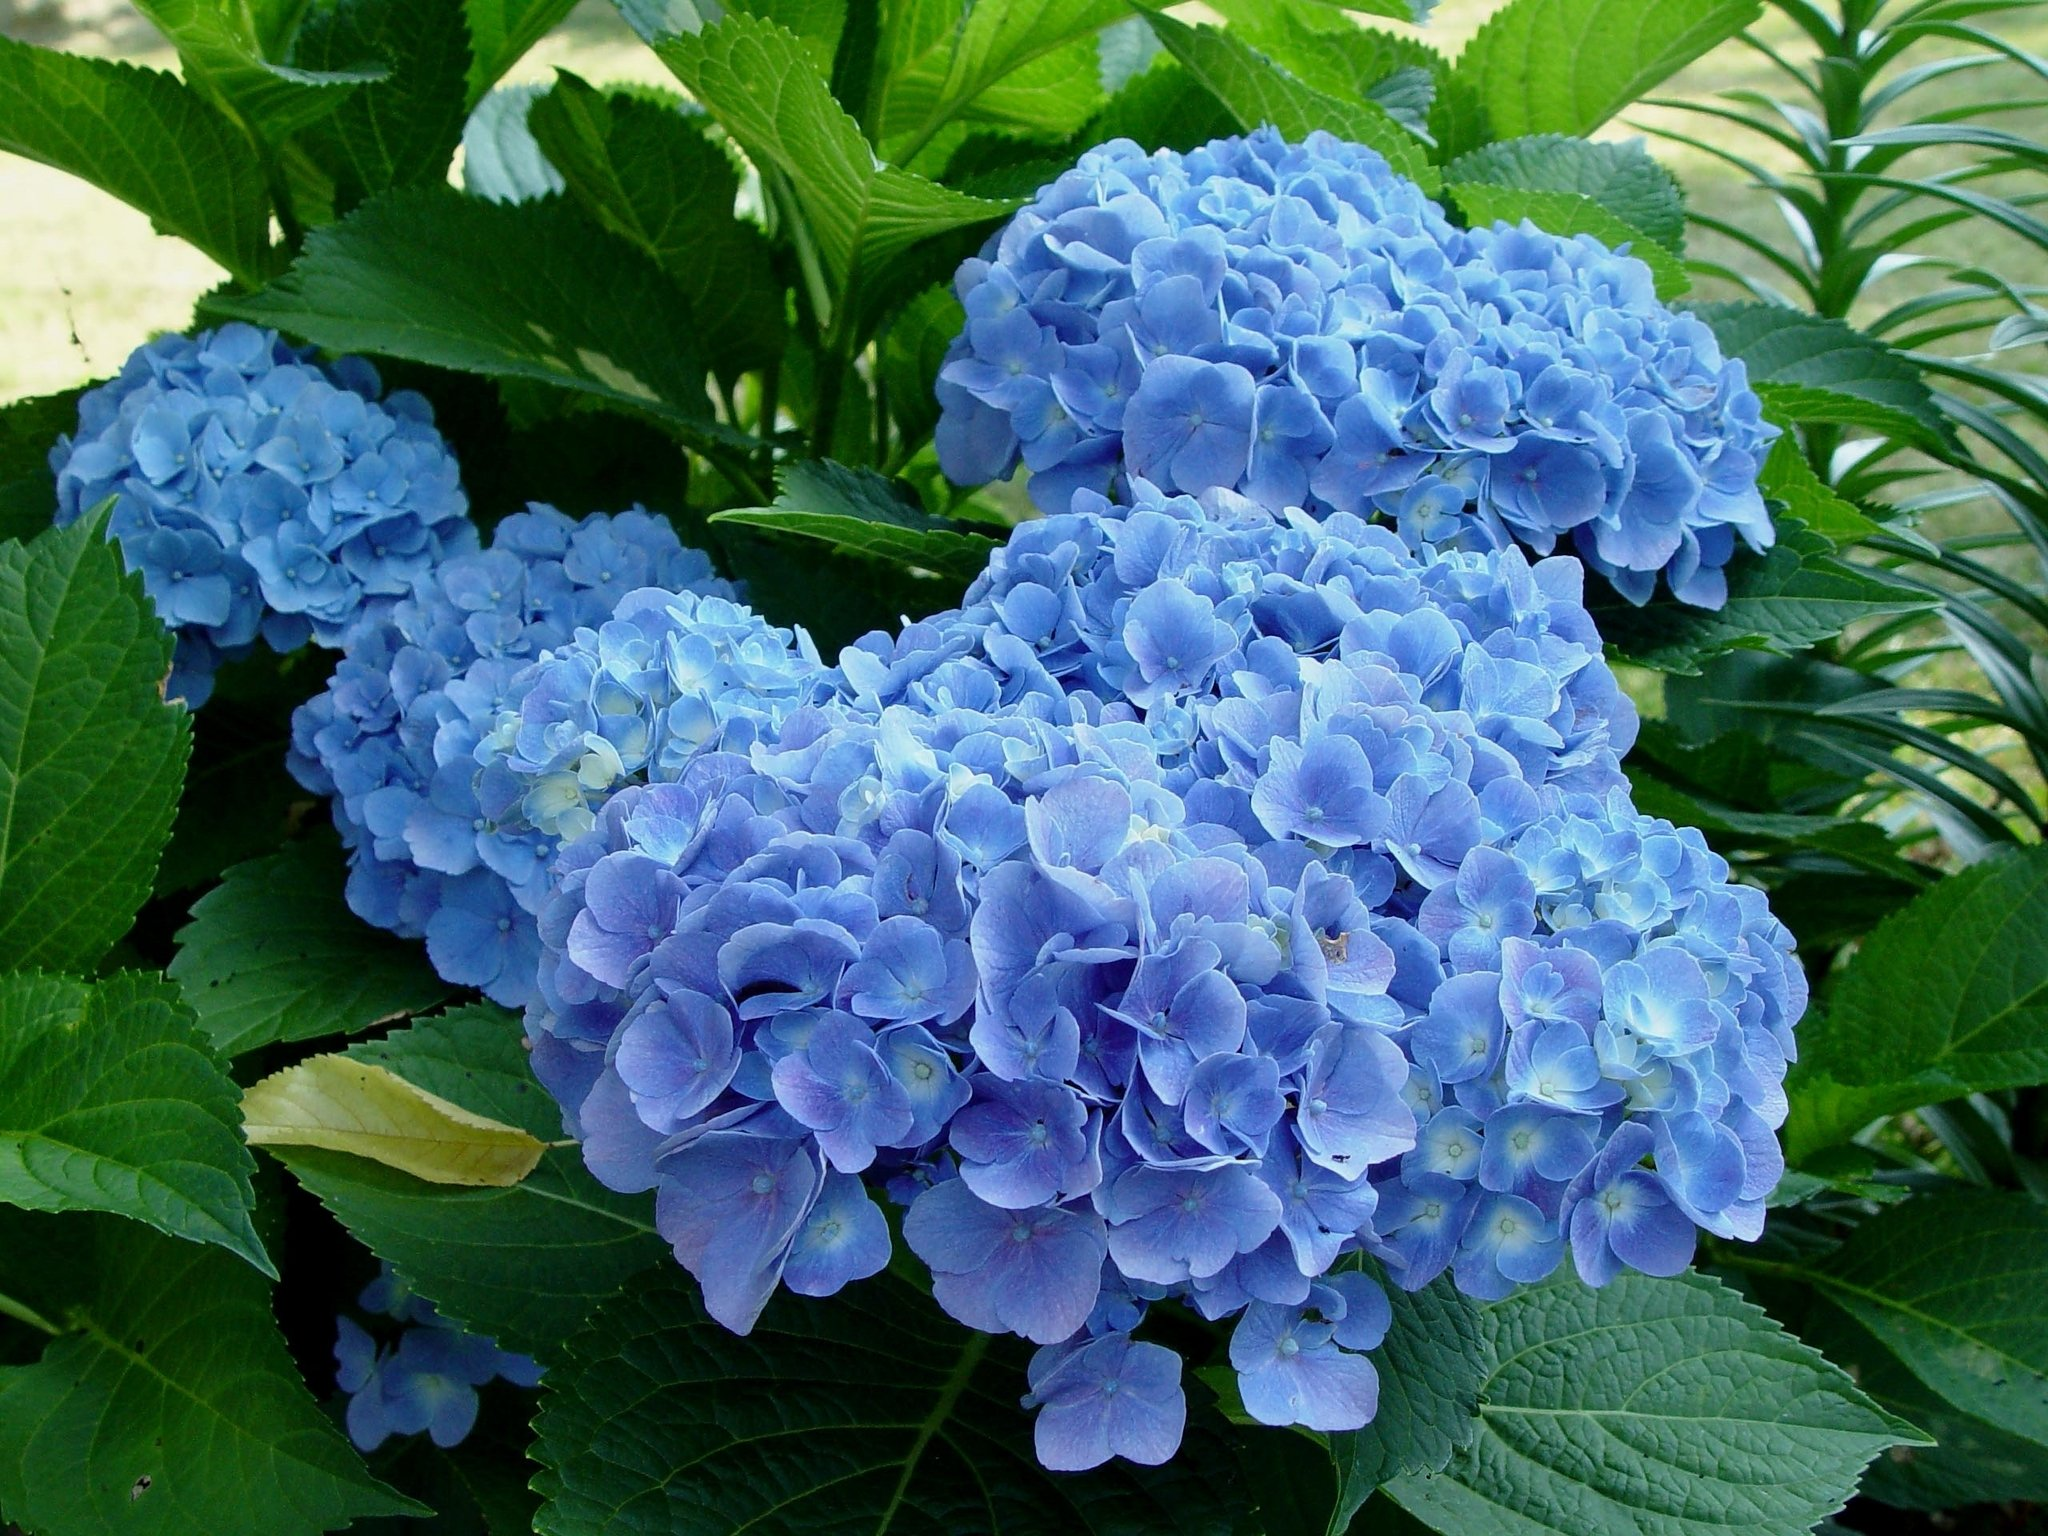 Hydrangea Didn't Flower This Year The Year The Hydrangeas Didn't Bloom: George Weigel